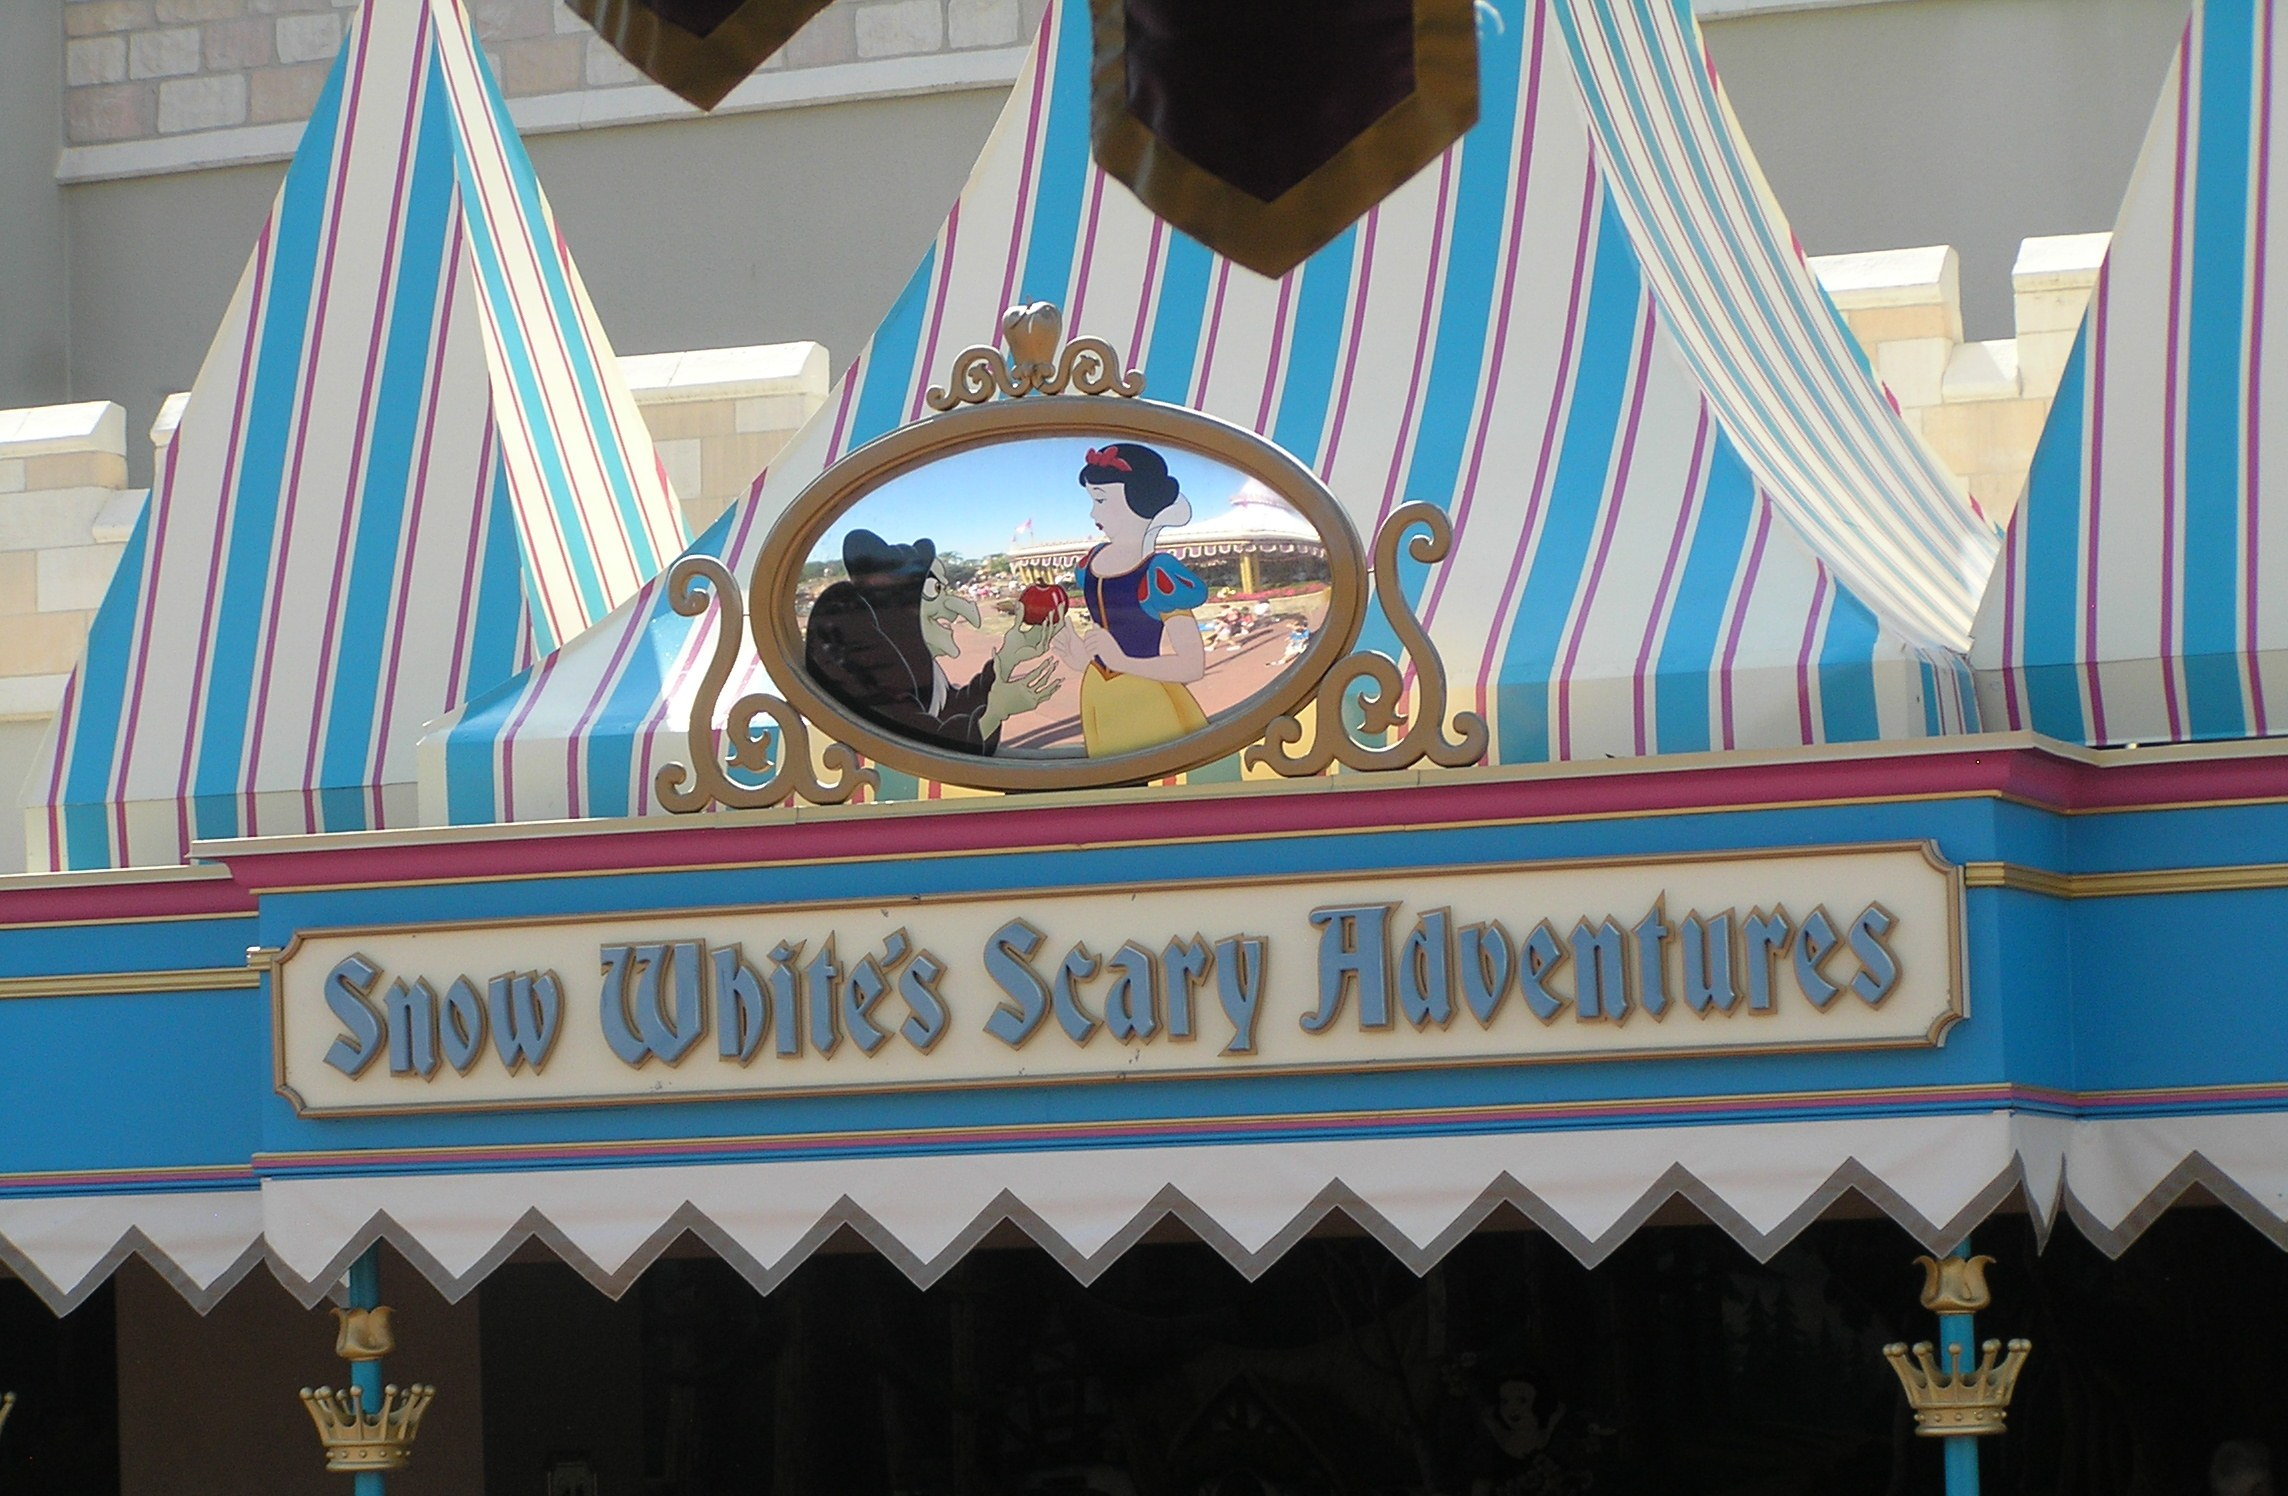 Image result for snow white's scary adventures disney world